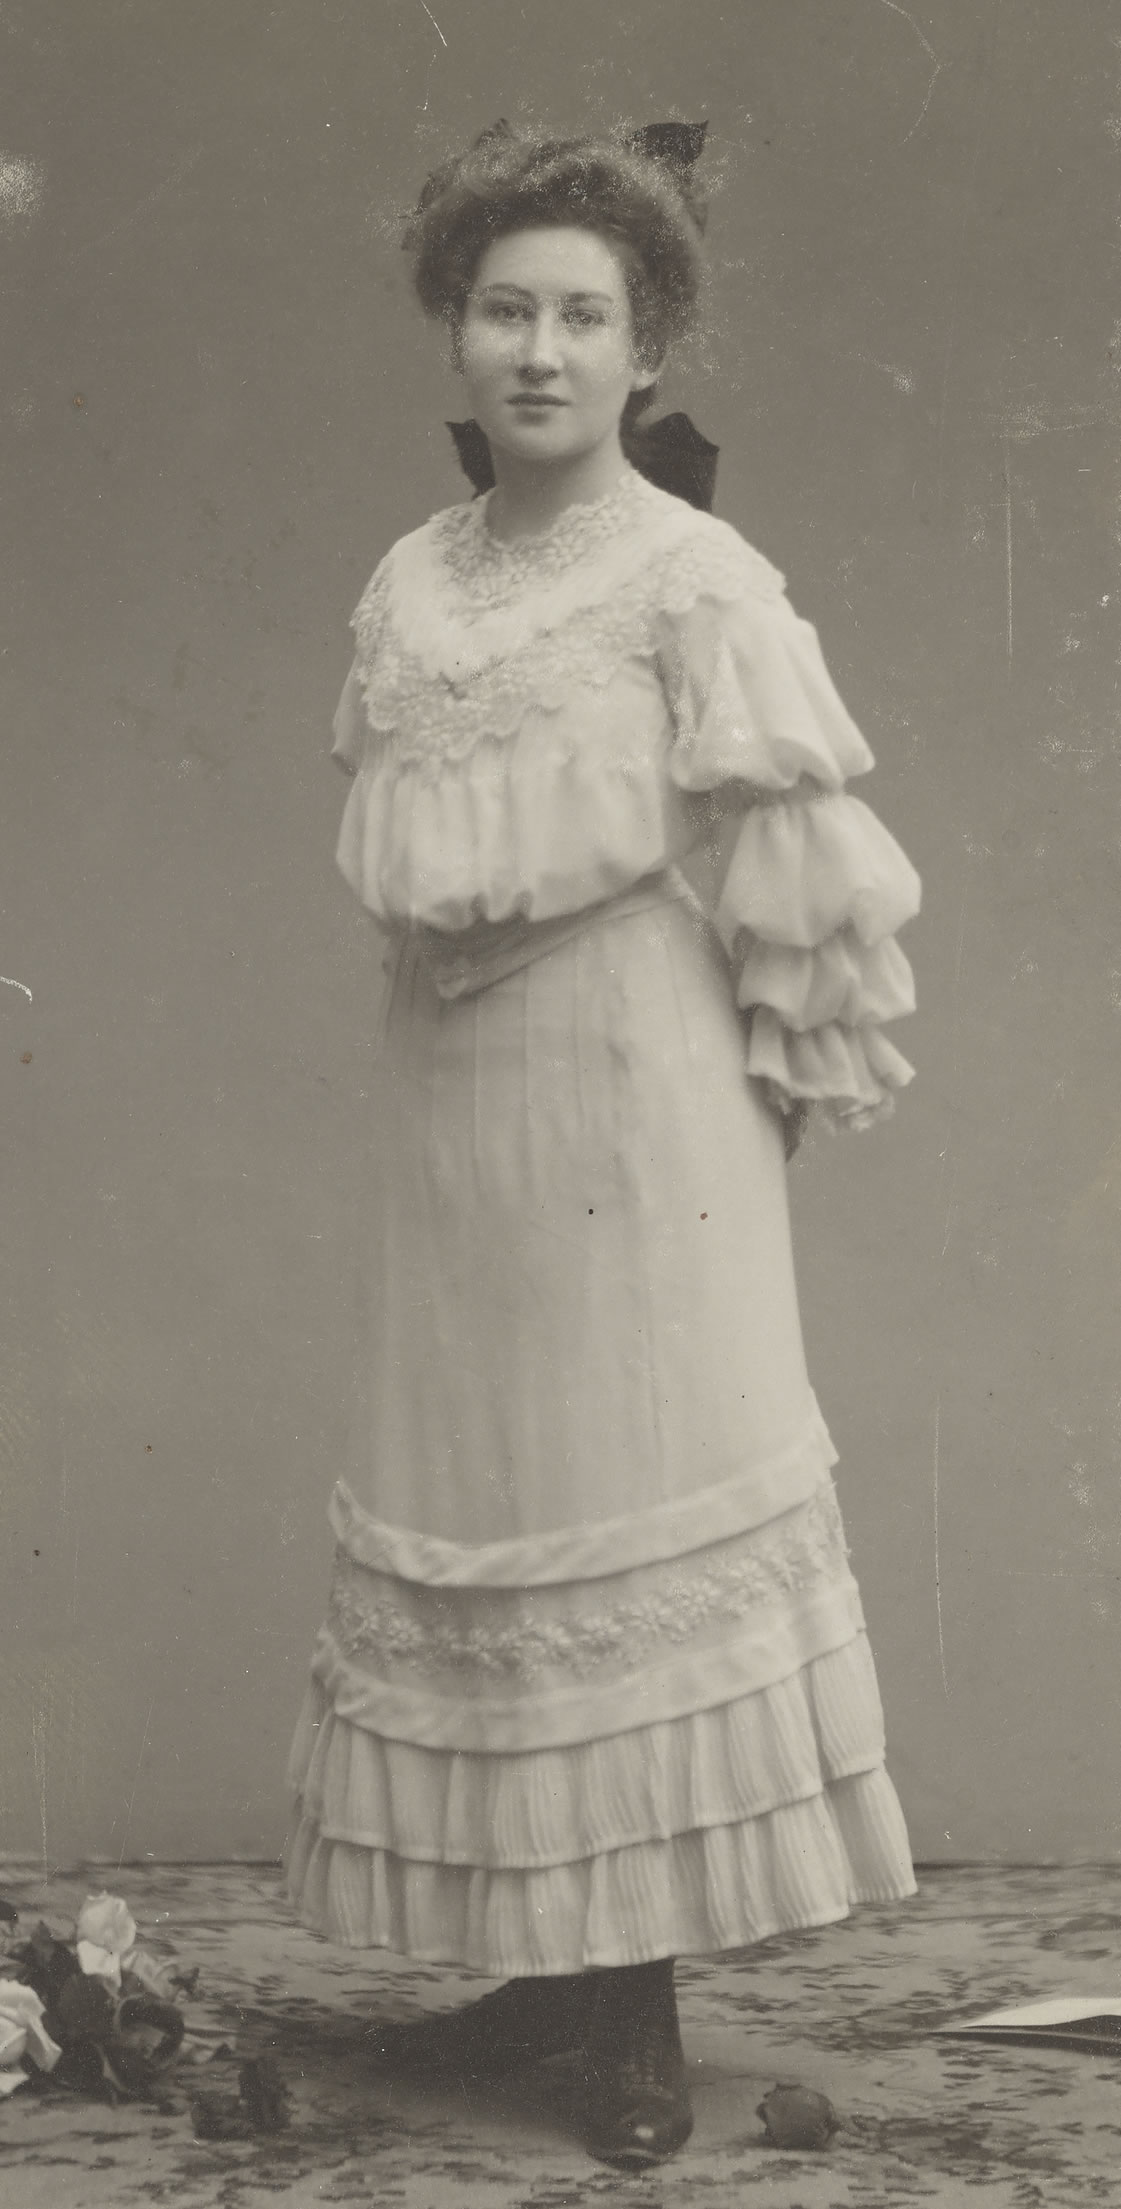 Emmy Esther Scheyer, Bad Homburg, 1905, Foto F. Carl, Getty Research Insitute, Peg Weiss Papers, 1916 - 1990